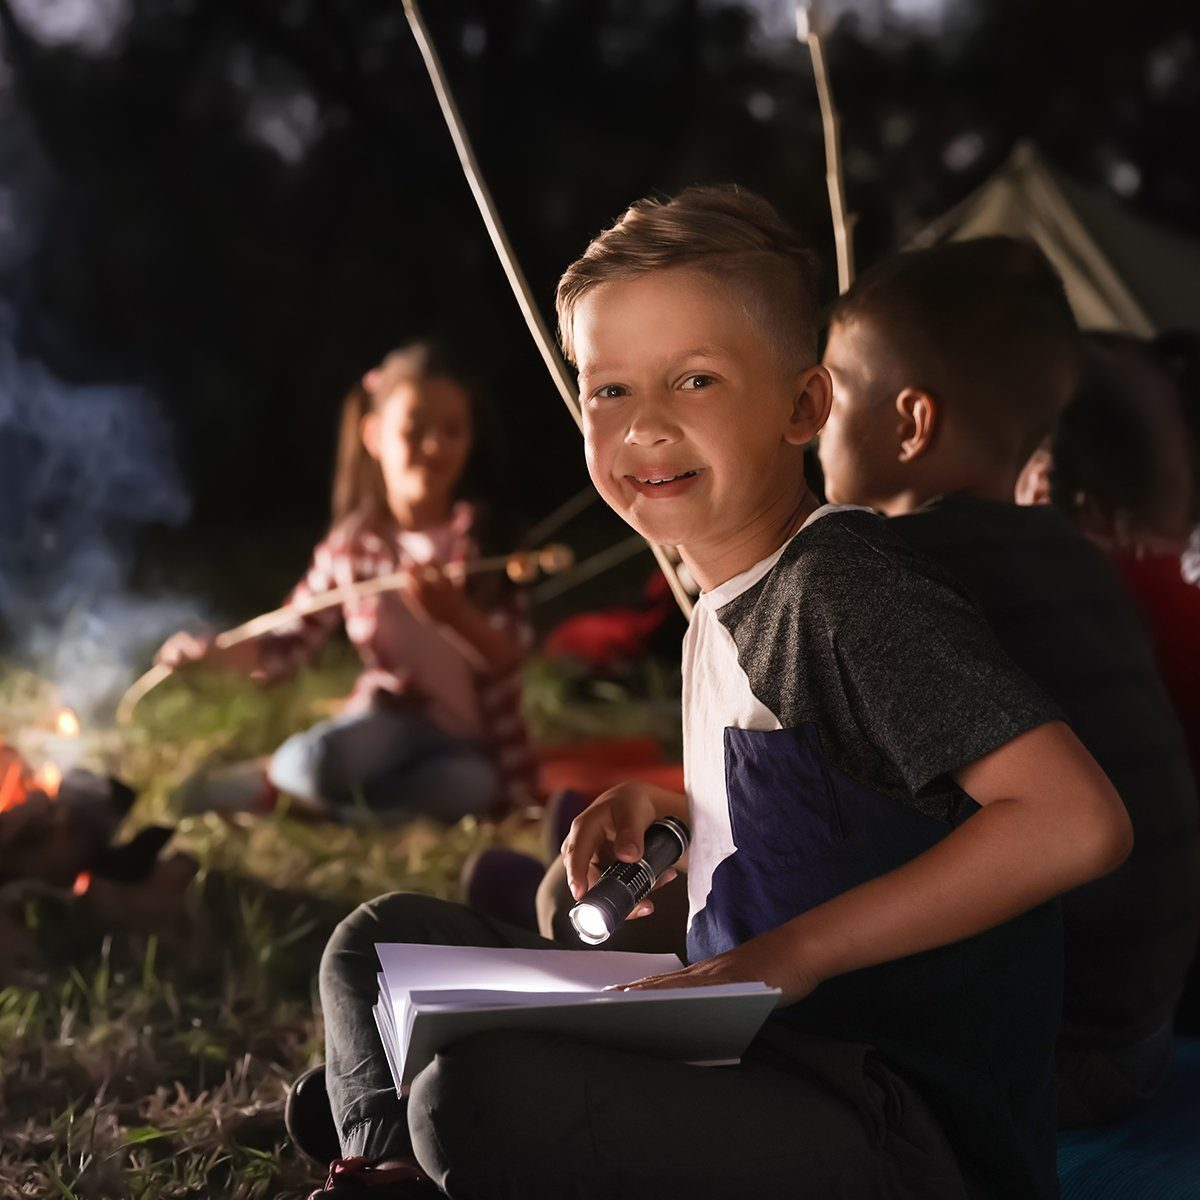 Little boy with book and flashlight near bonfire at night.